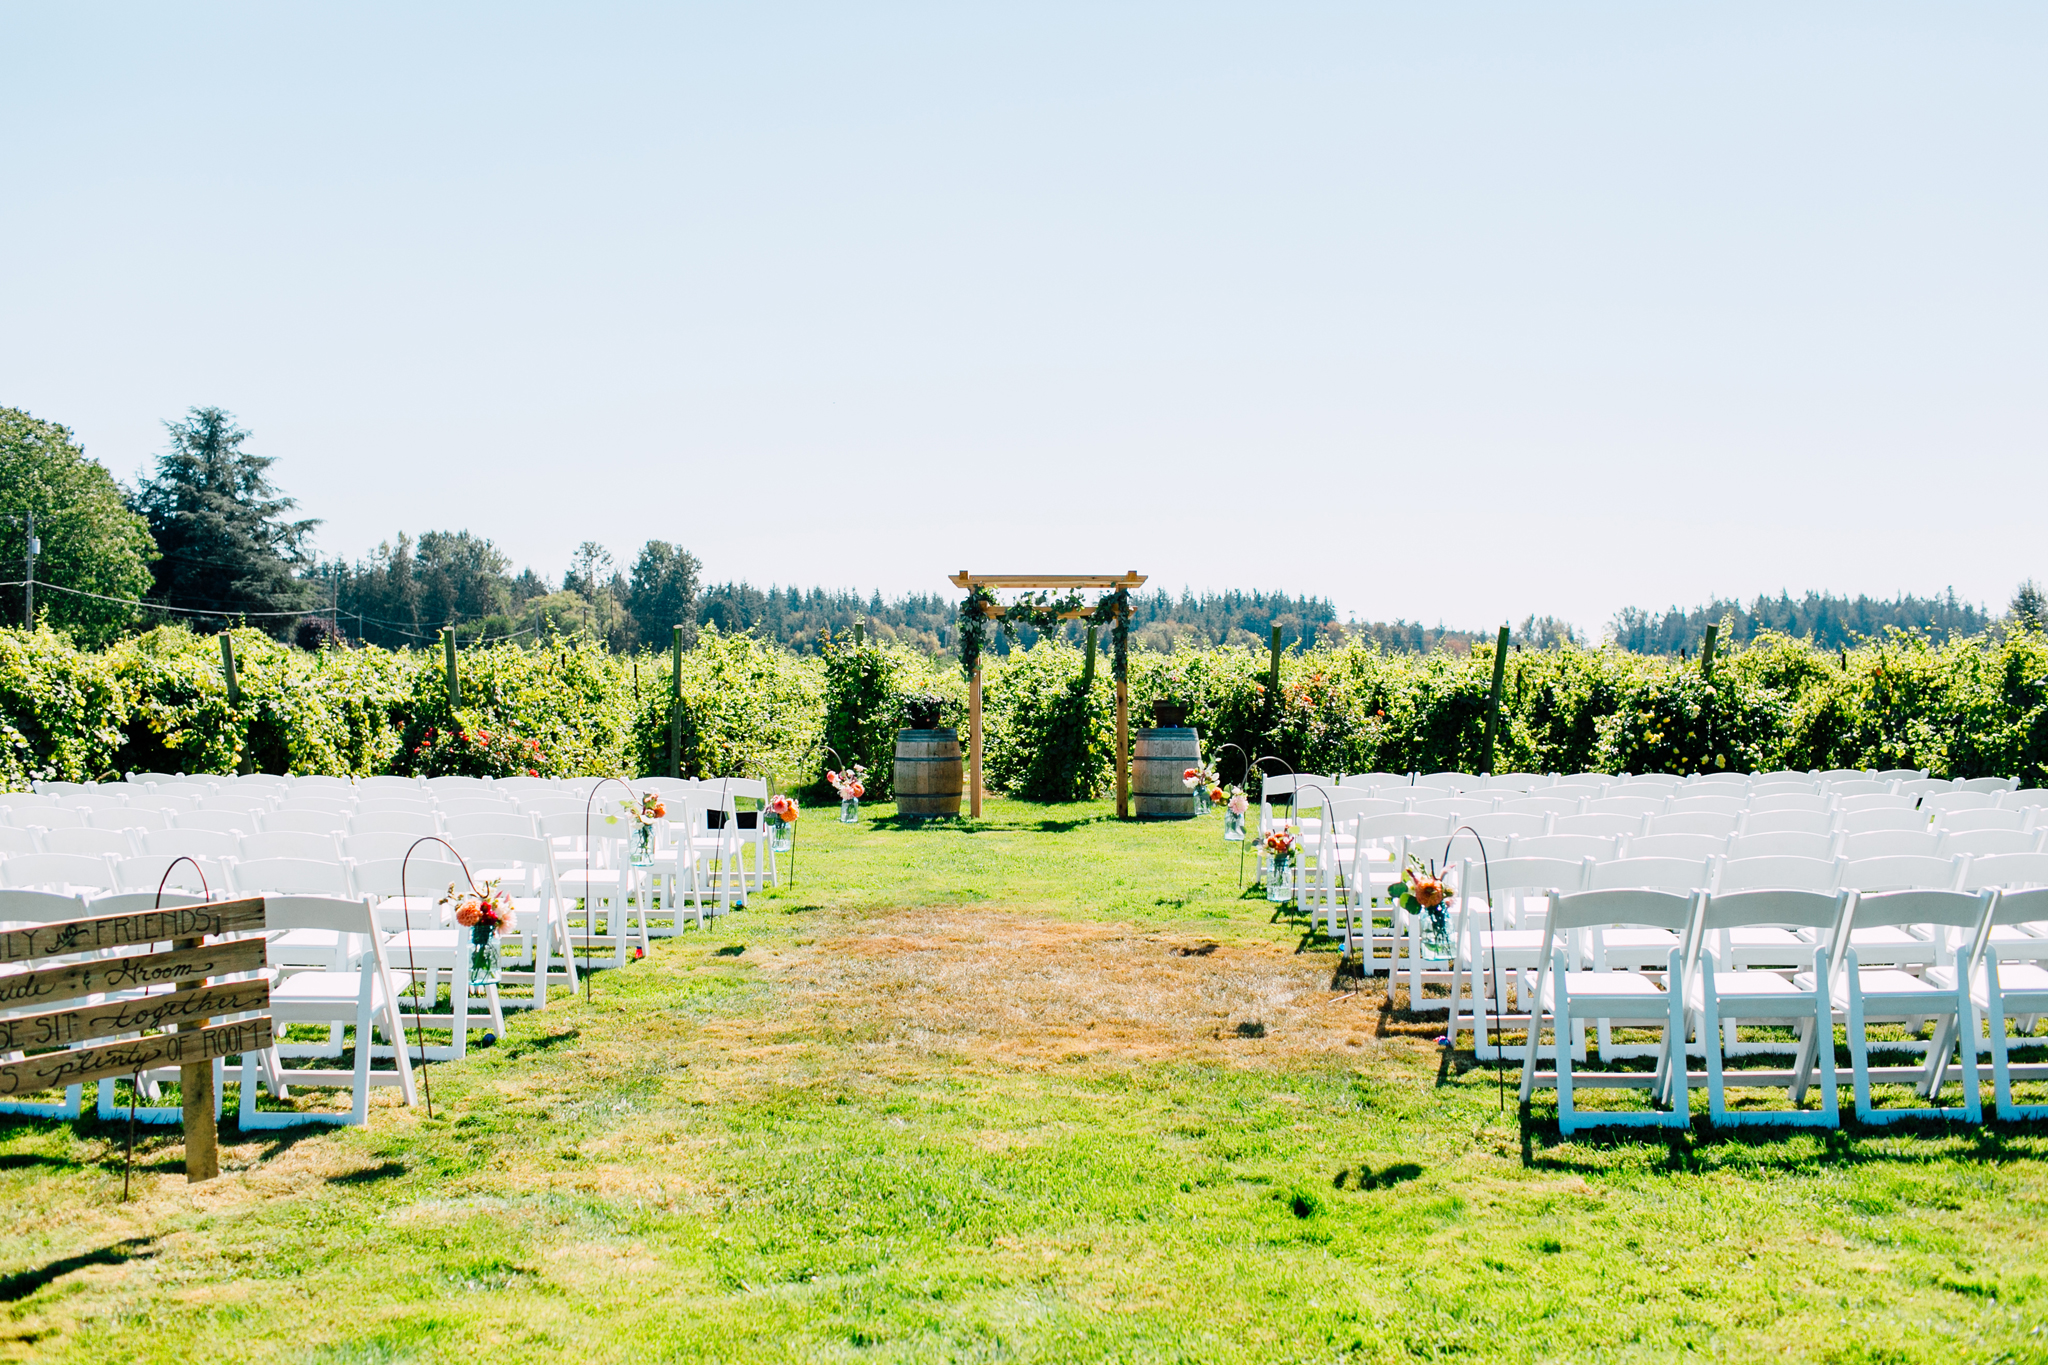 051-bellingham-wedding-photographer-samson-winery-katheryn-moran.jpg